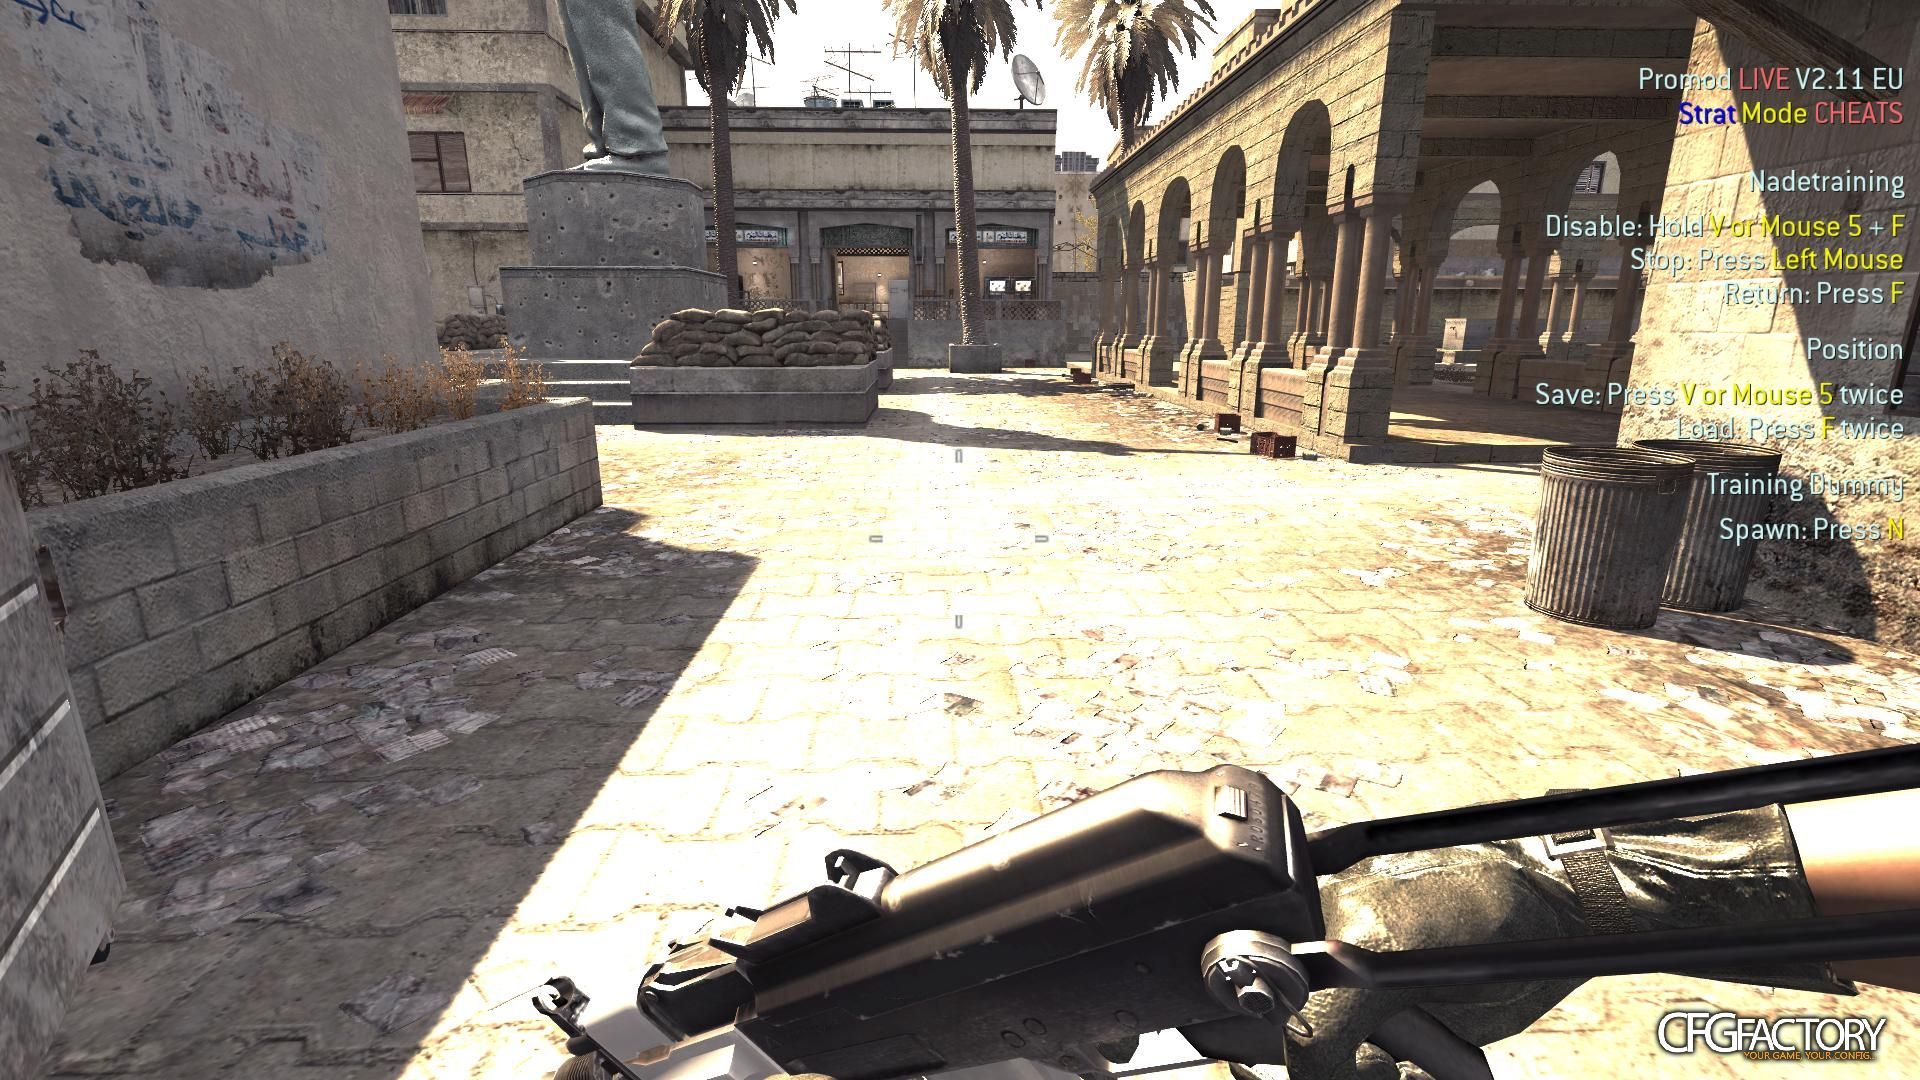 cod4, movie configs, movie config v1, hexziionz